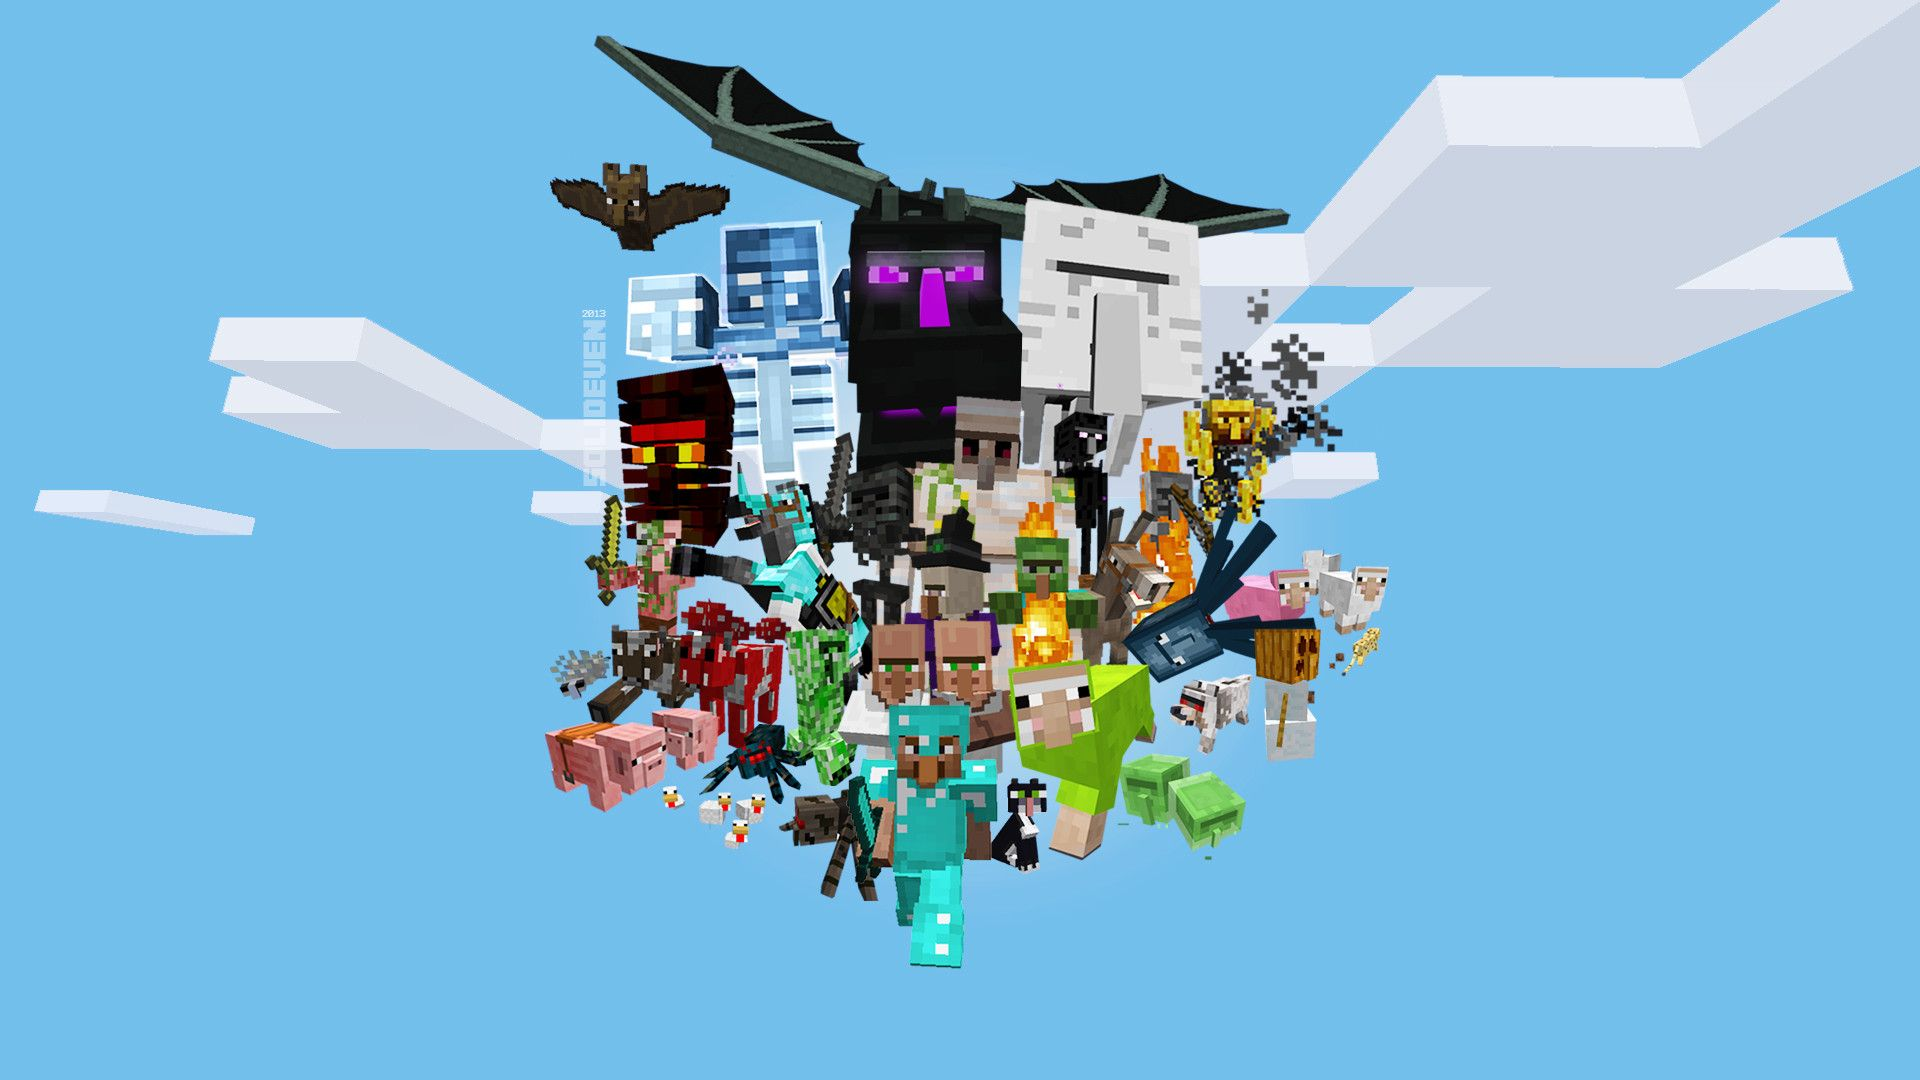 Amazing Wallpaper Minecraft 1080p - 64aa3e030a7d0412e079c993f6d0463f  You Should Have_934072.jpg